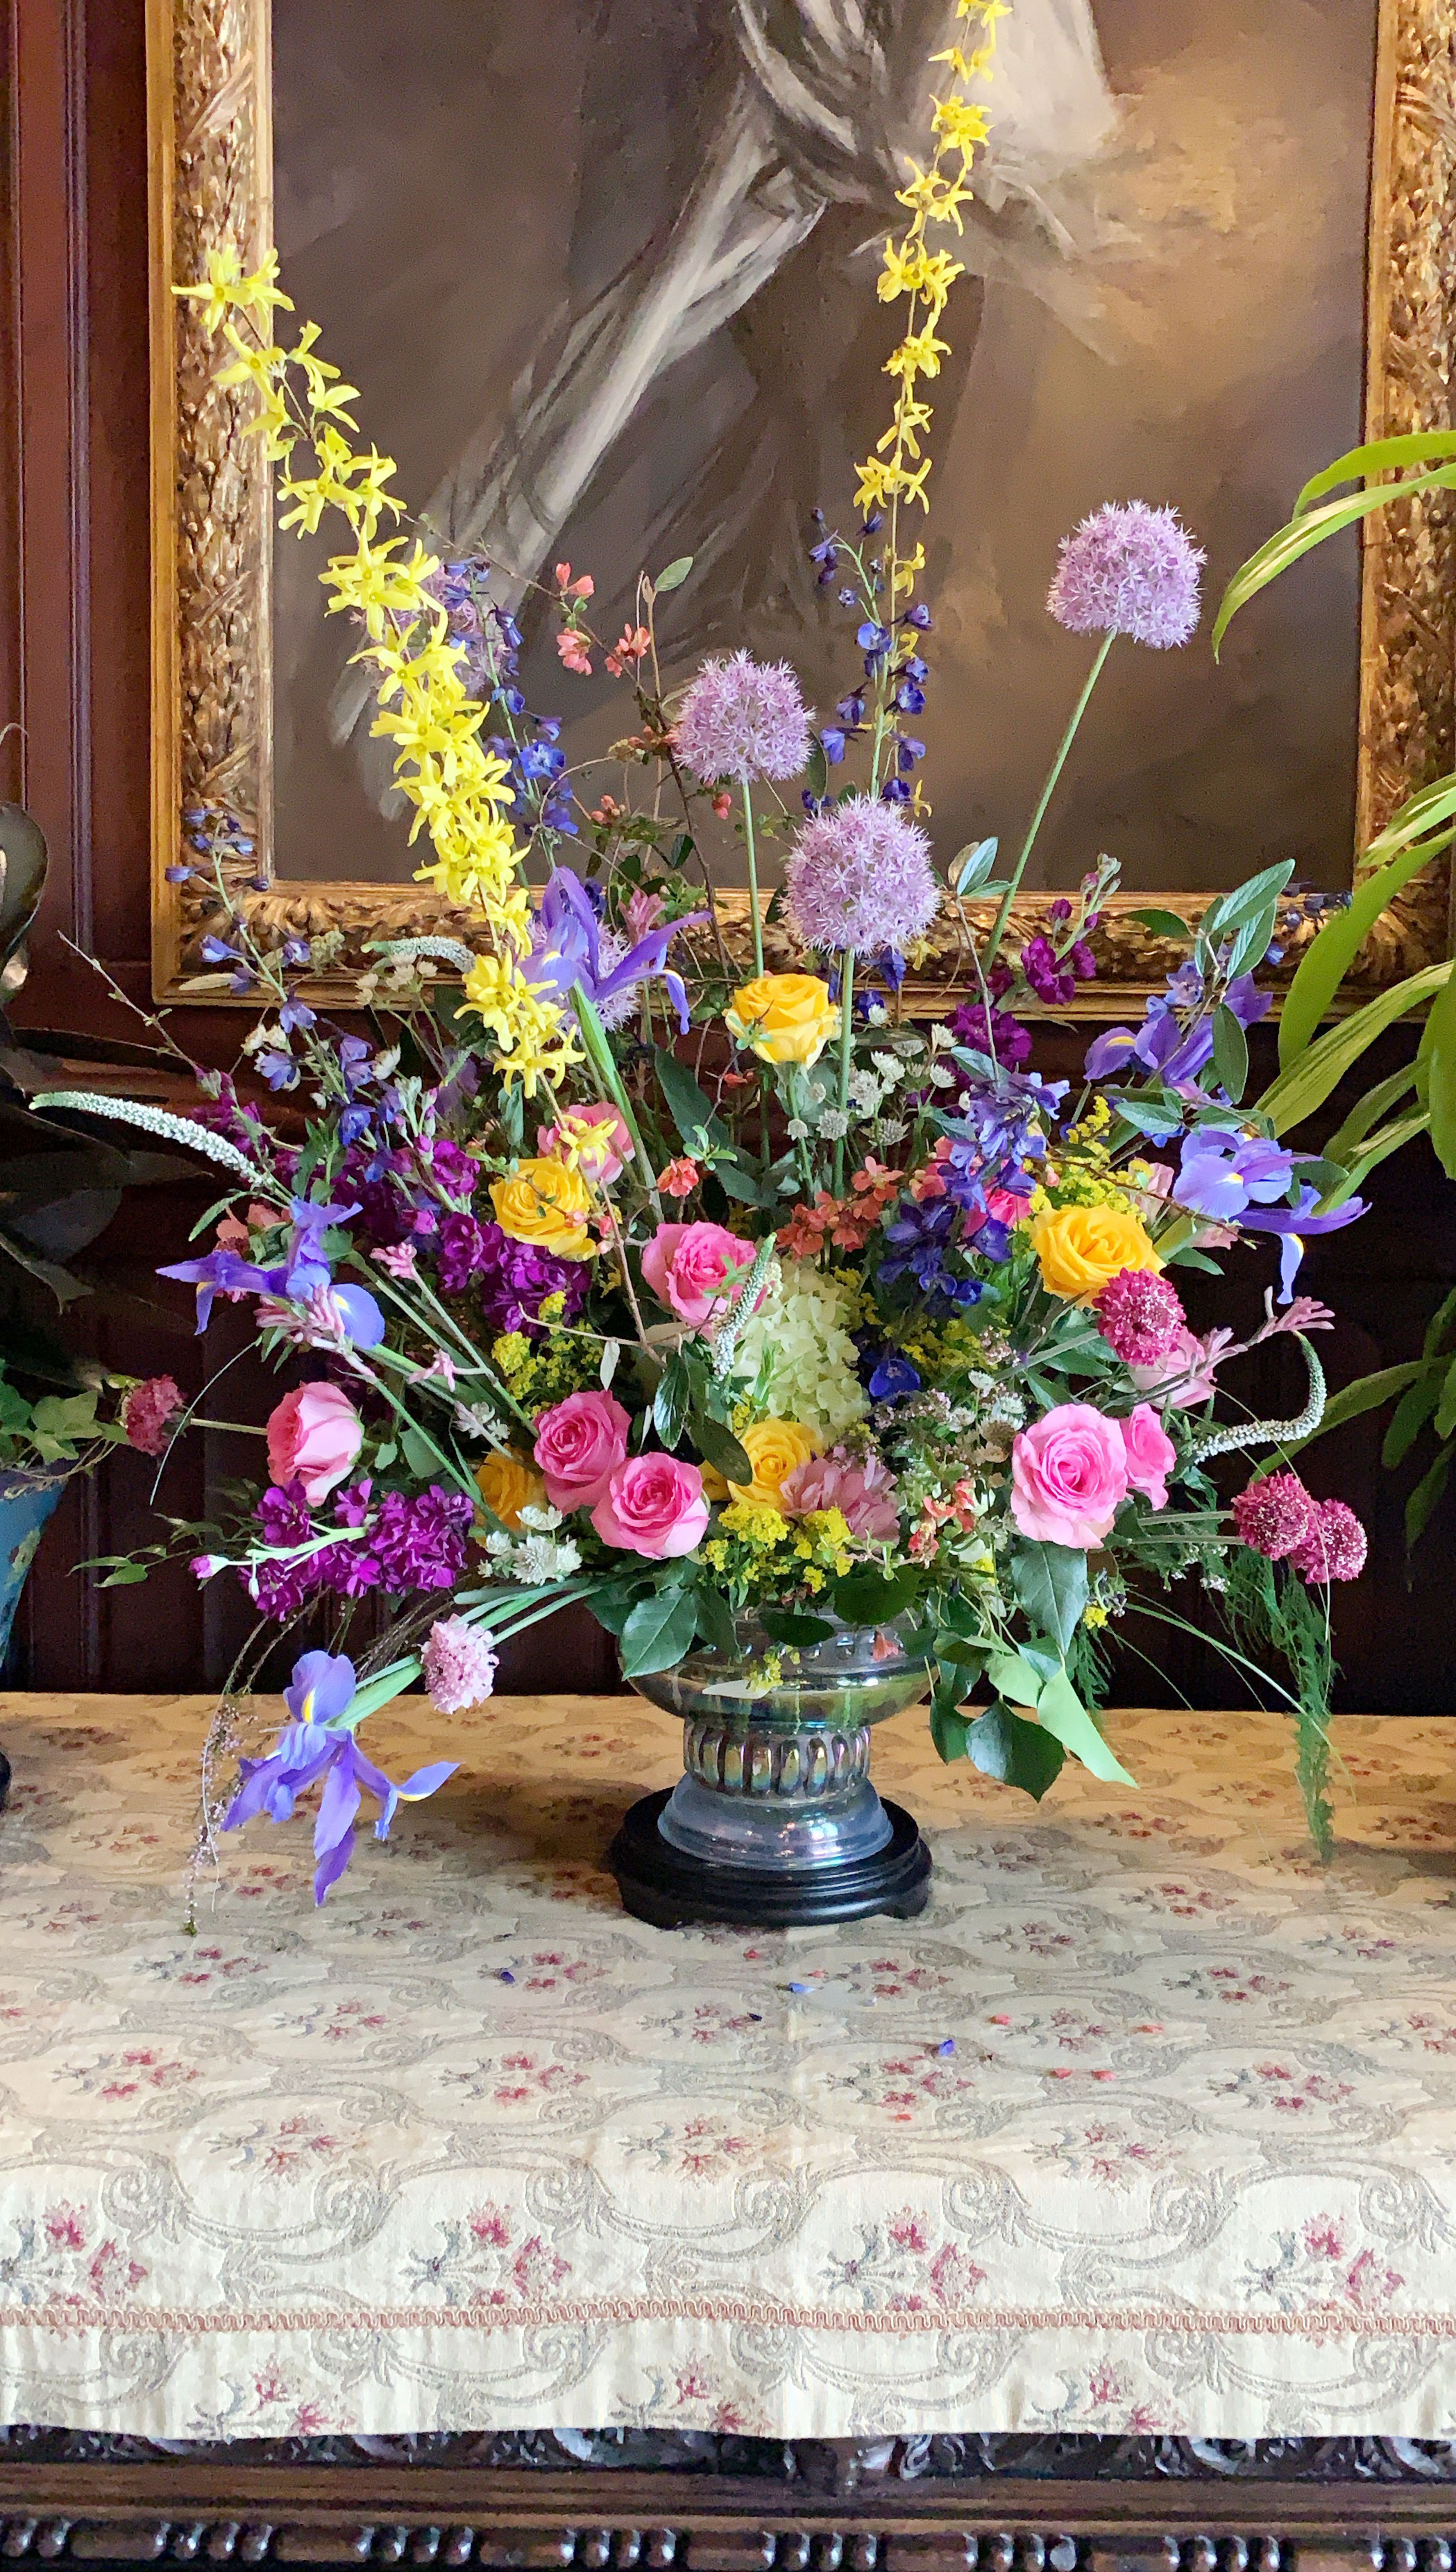 The Biltmore House is spectacular, and it's made all the more incredible with beautiful exhibits and stunning fresh flowers.